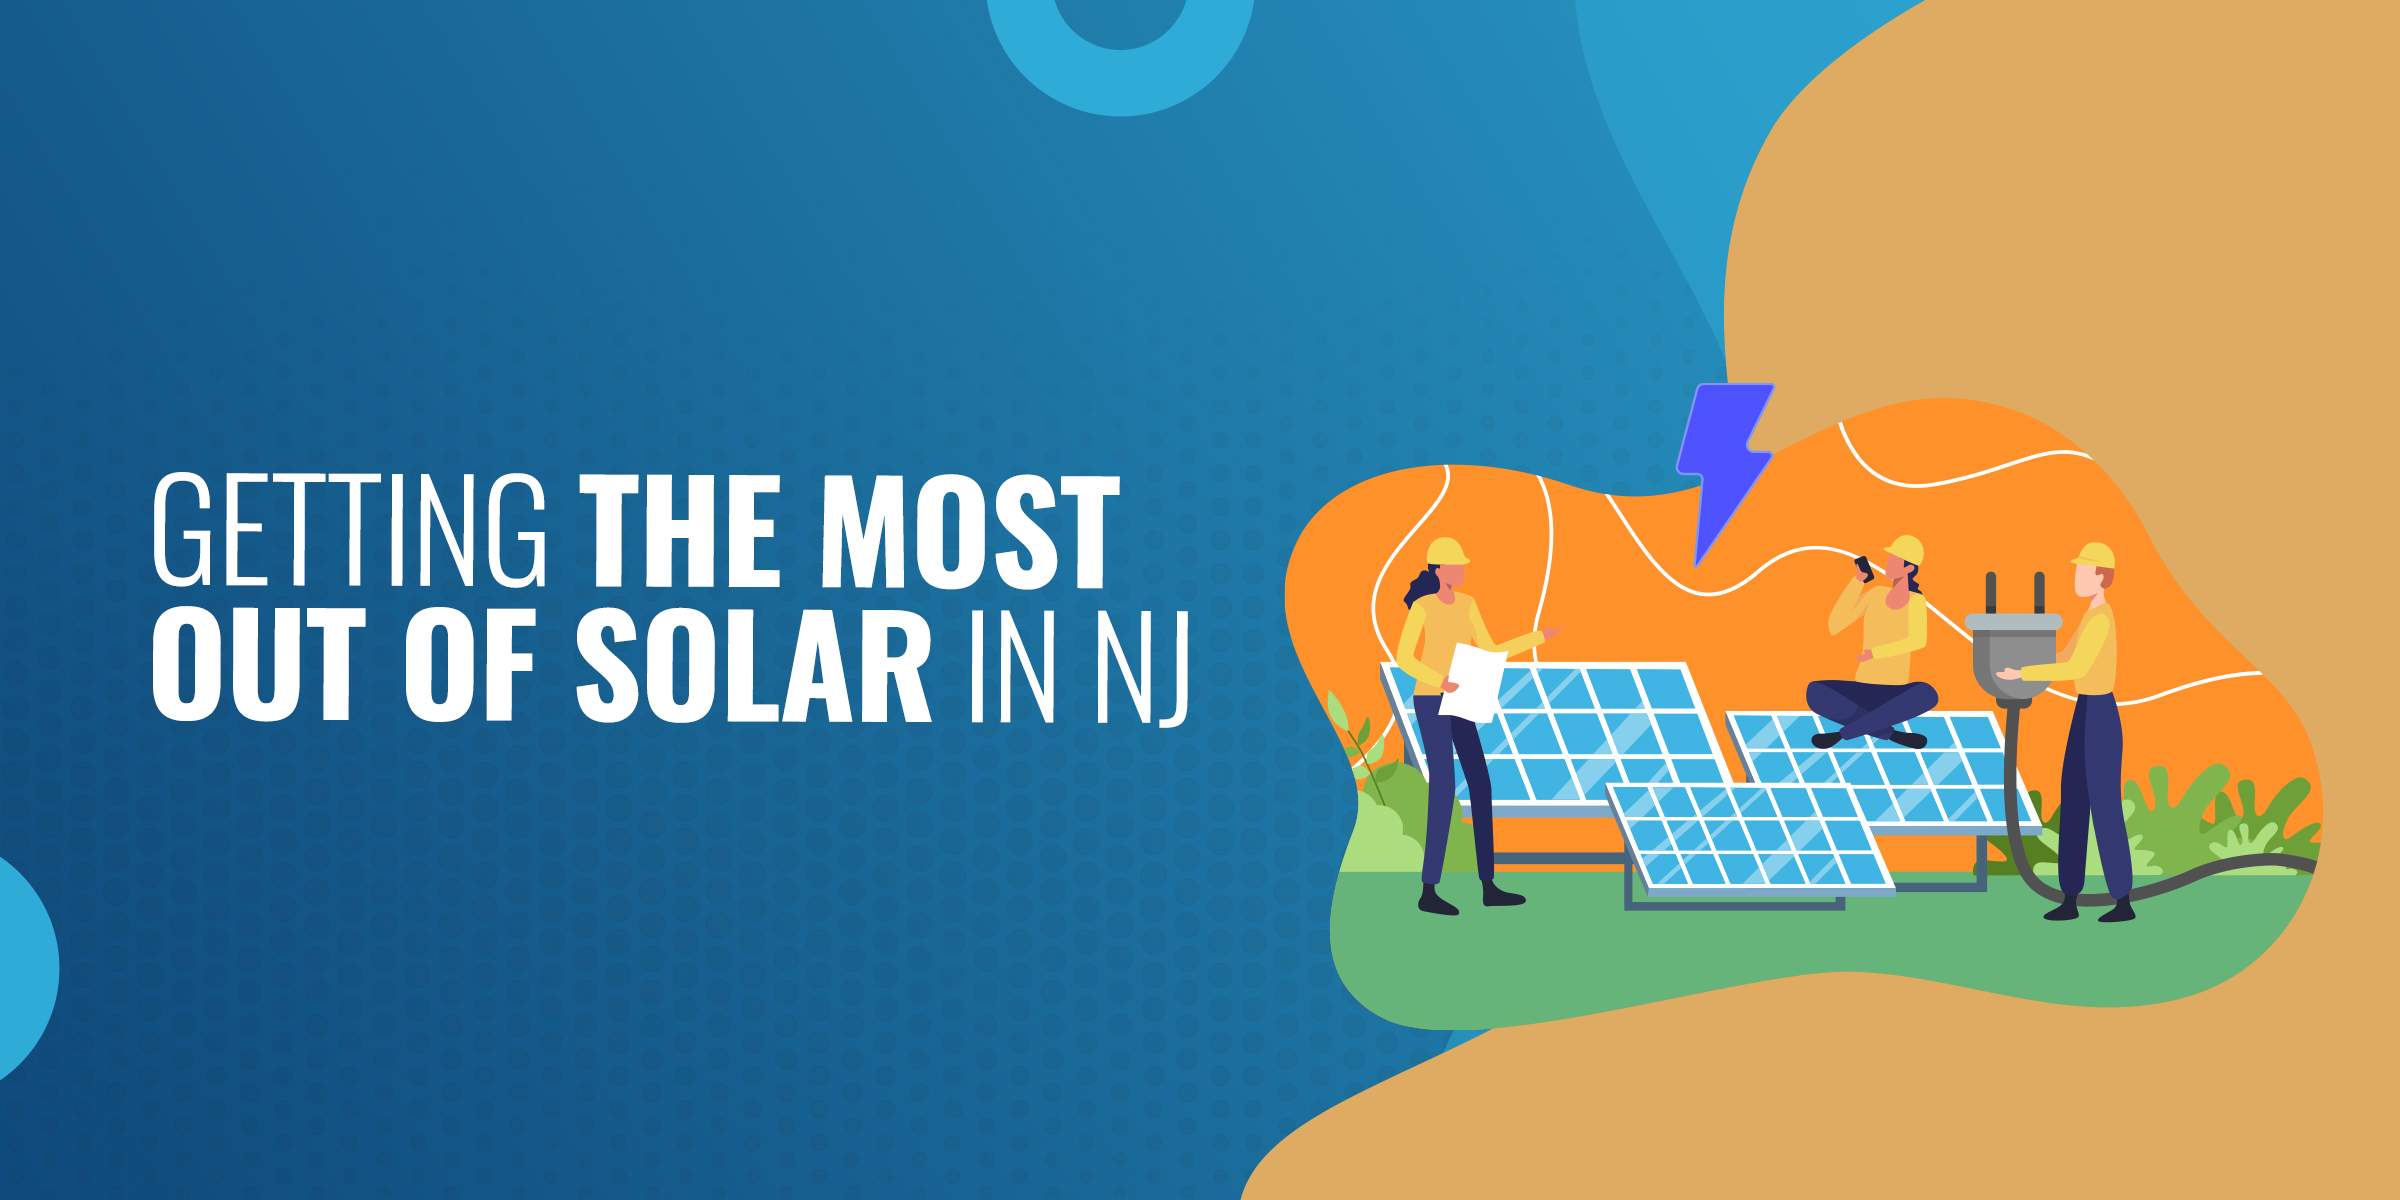 Getting the Most Out of Solar in NJ